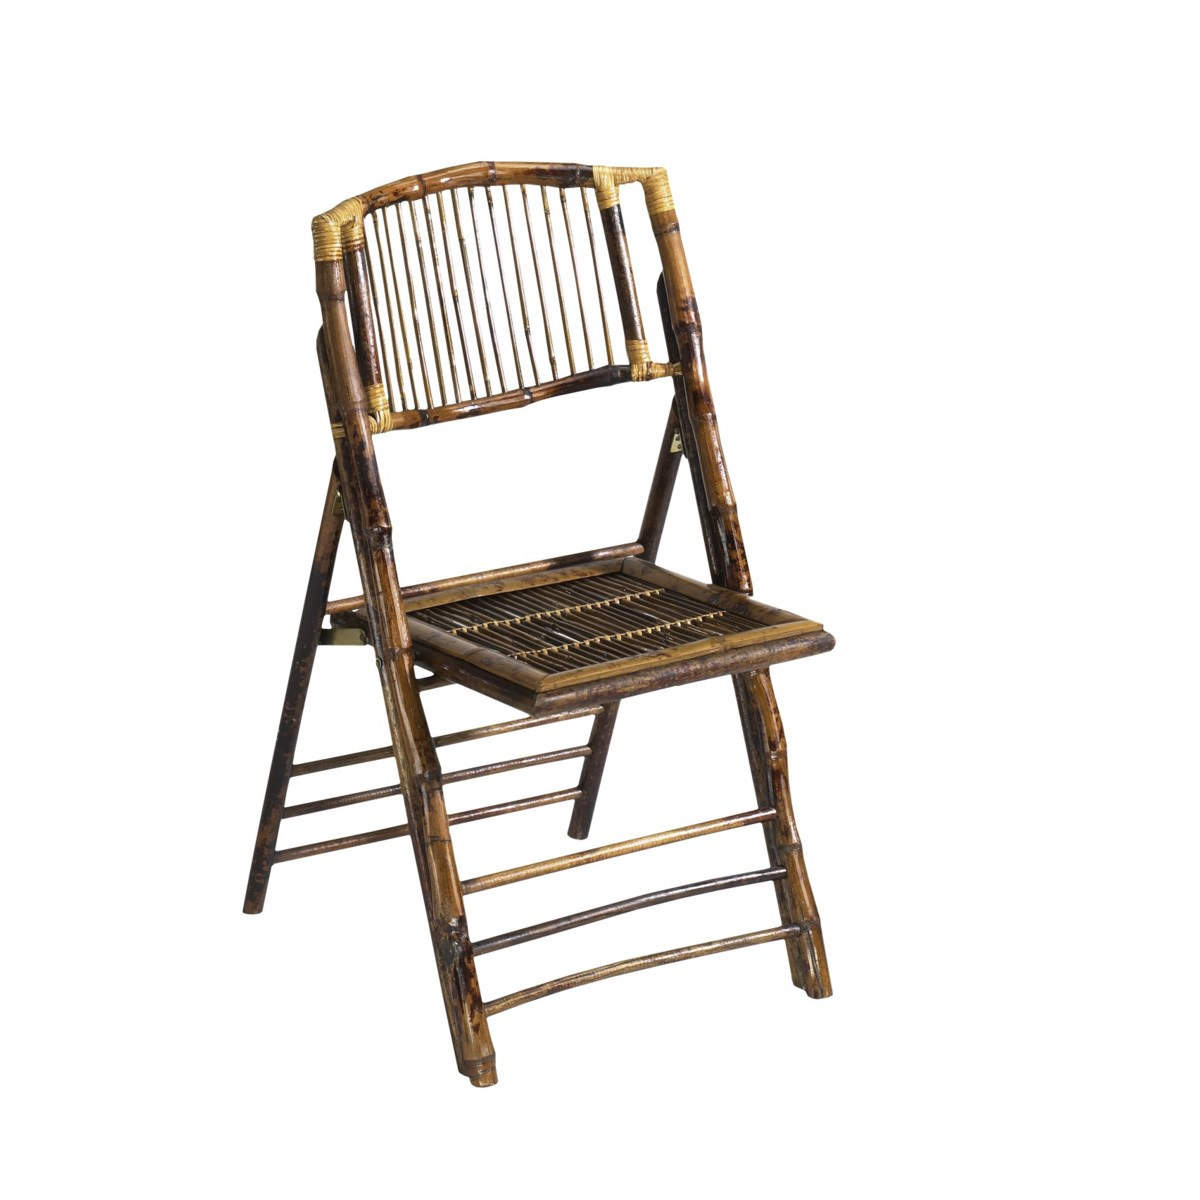 Folding Rattan Chair  Frame Color - Tortoise Gloss             Sold as a 4 pack ONLY  (Price Show